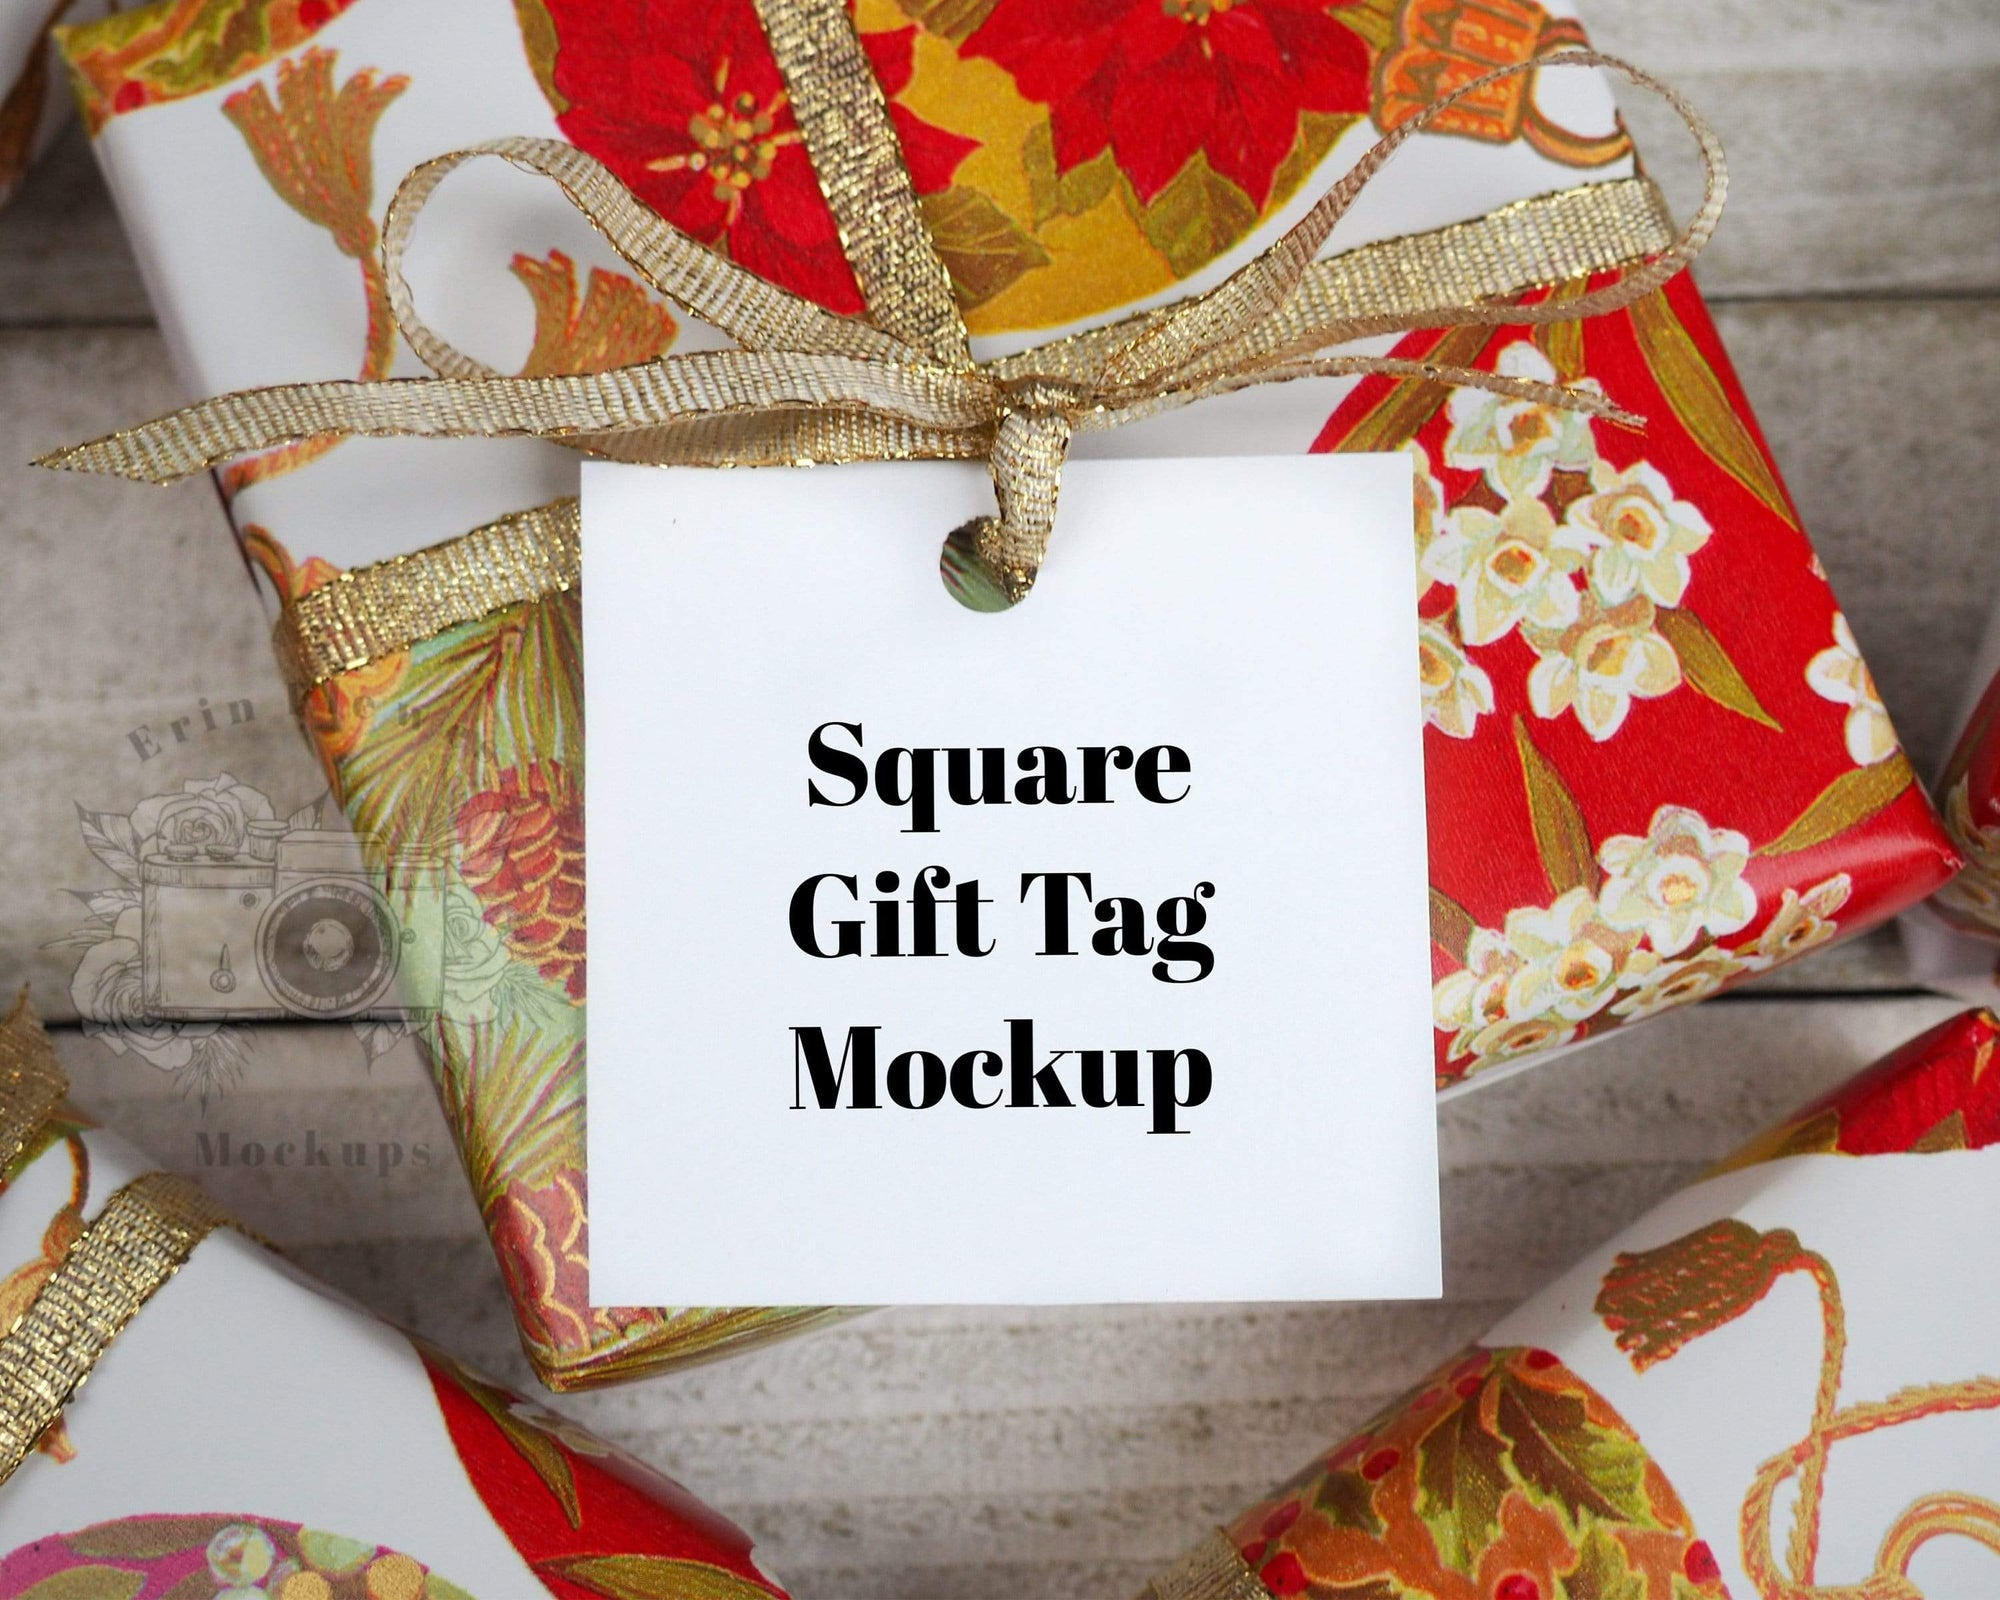 Erin Plewes Mockups Square gift tag mockup, Christmas label mock up for presents and Wedding stock photography, Jpeg Instant Digital Download